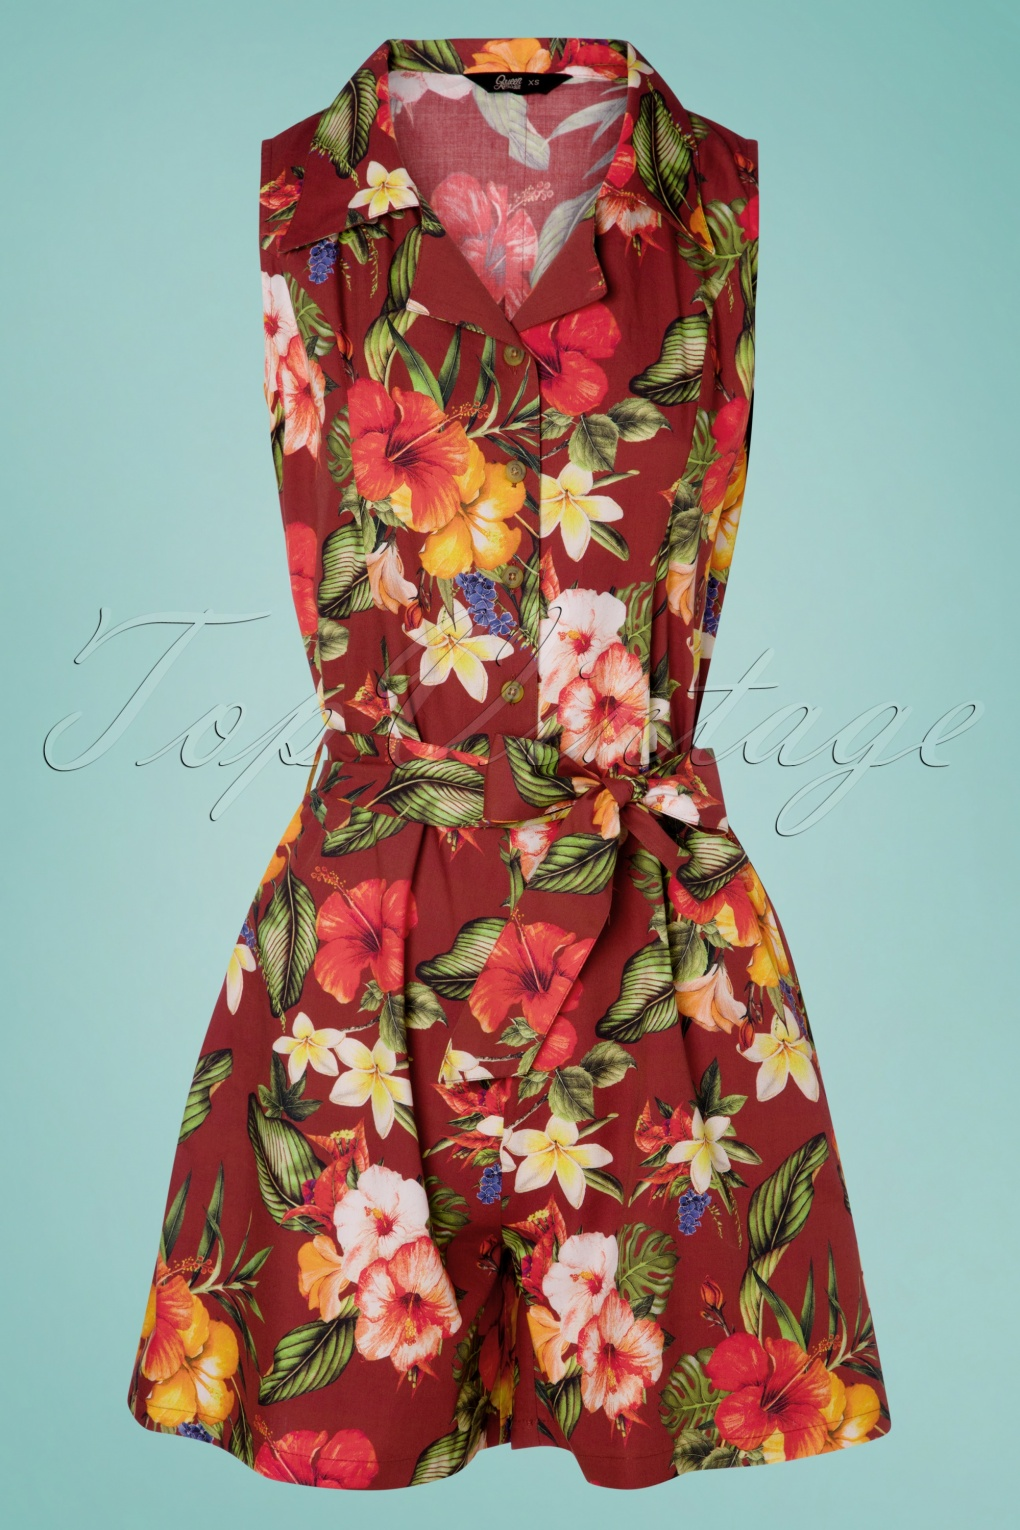 Vintage Rompers, Playsuits | Retro, Pin Up, Rockabilly Playsuits 50s Mambo Jumpsuit in Bordeaux £24.95 AT vintagedancer.com